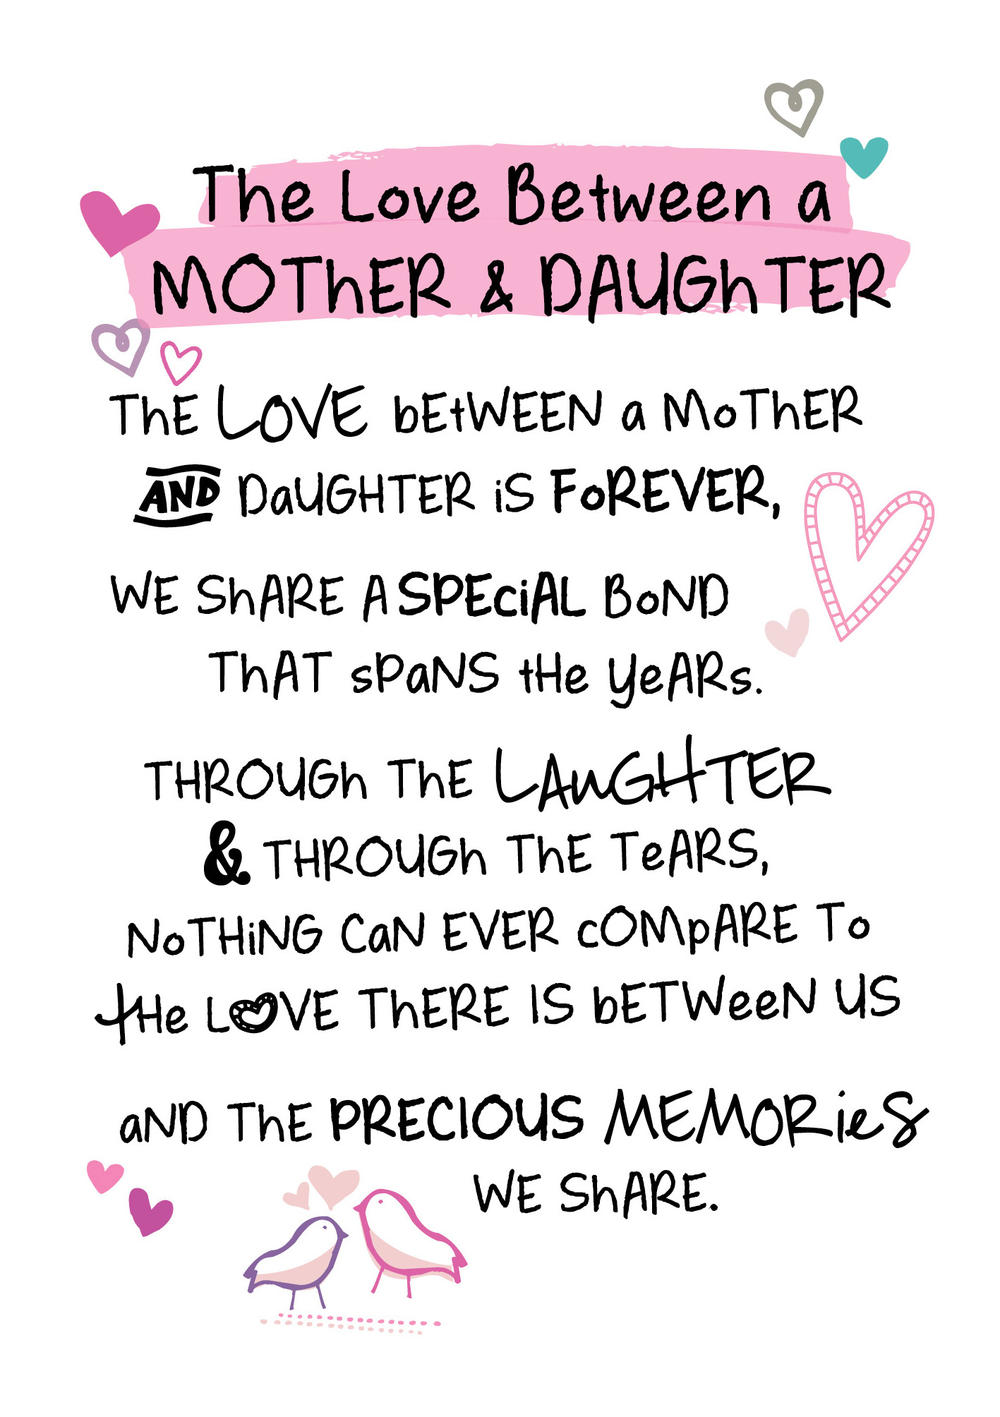 Mother & Daughter Love Inspired Words Greeting Card Blank Inside